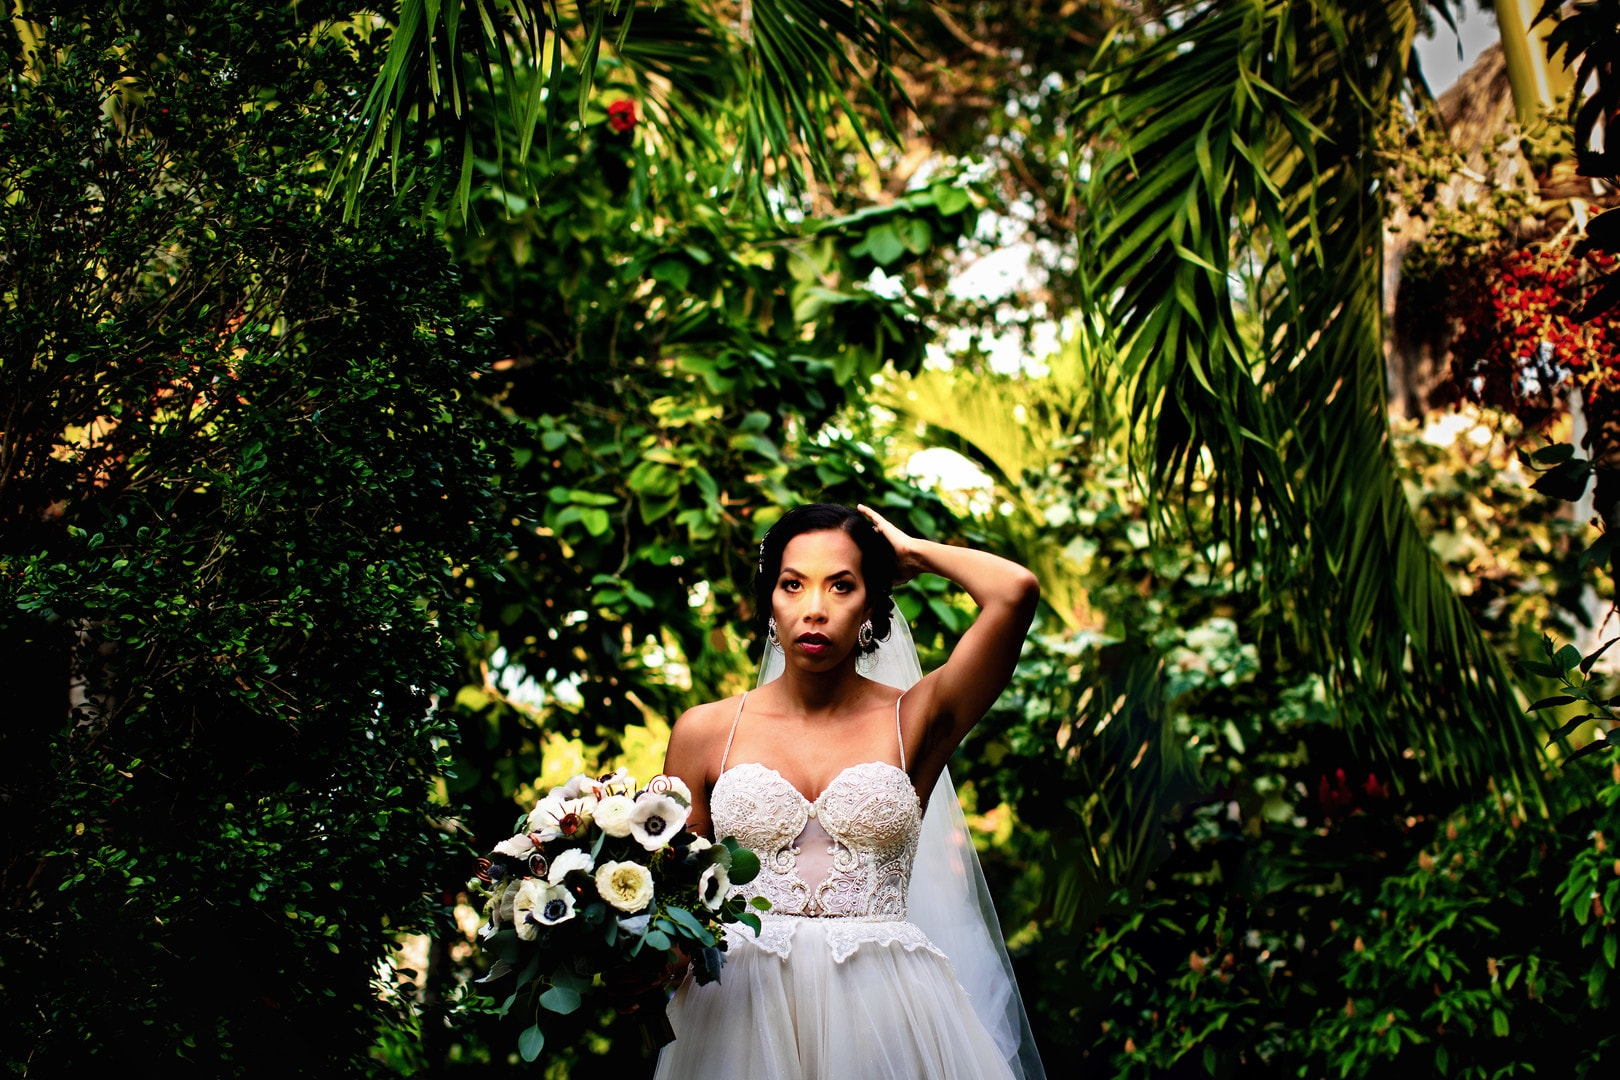 Kimmi & Dwayne's Luxurious Destination Wedding In Jamaica, Photography by Two Mann Studios for Destination Wedding network Adriana Weddings